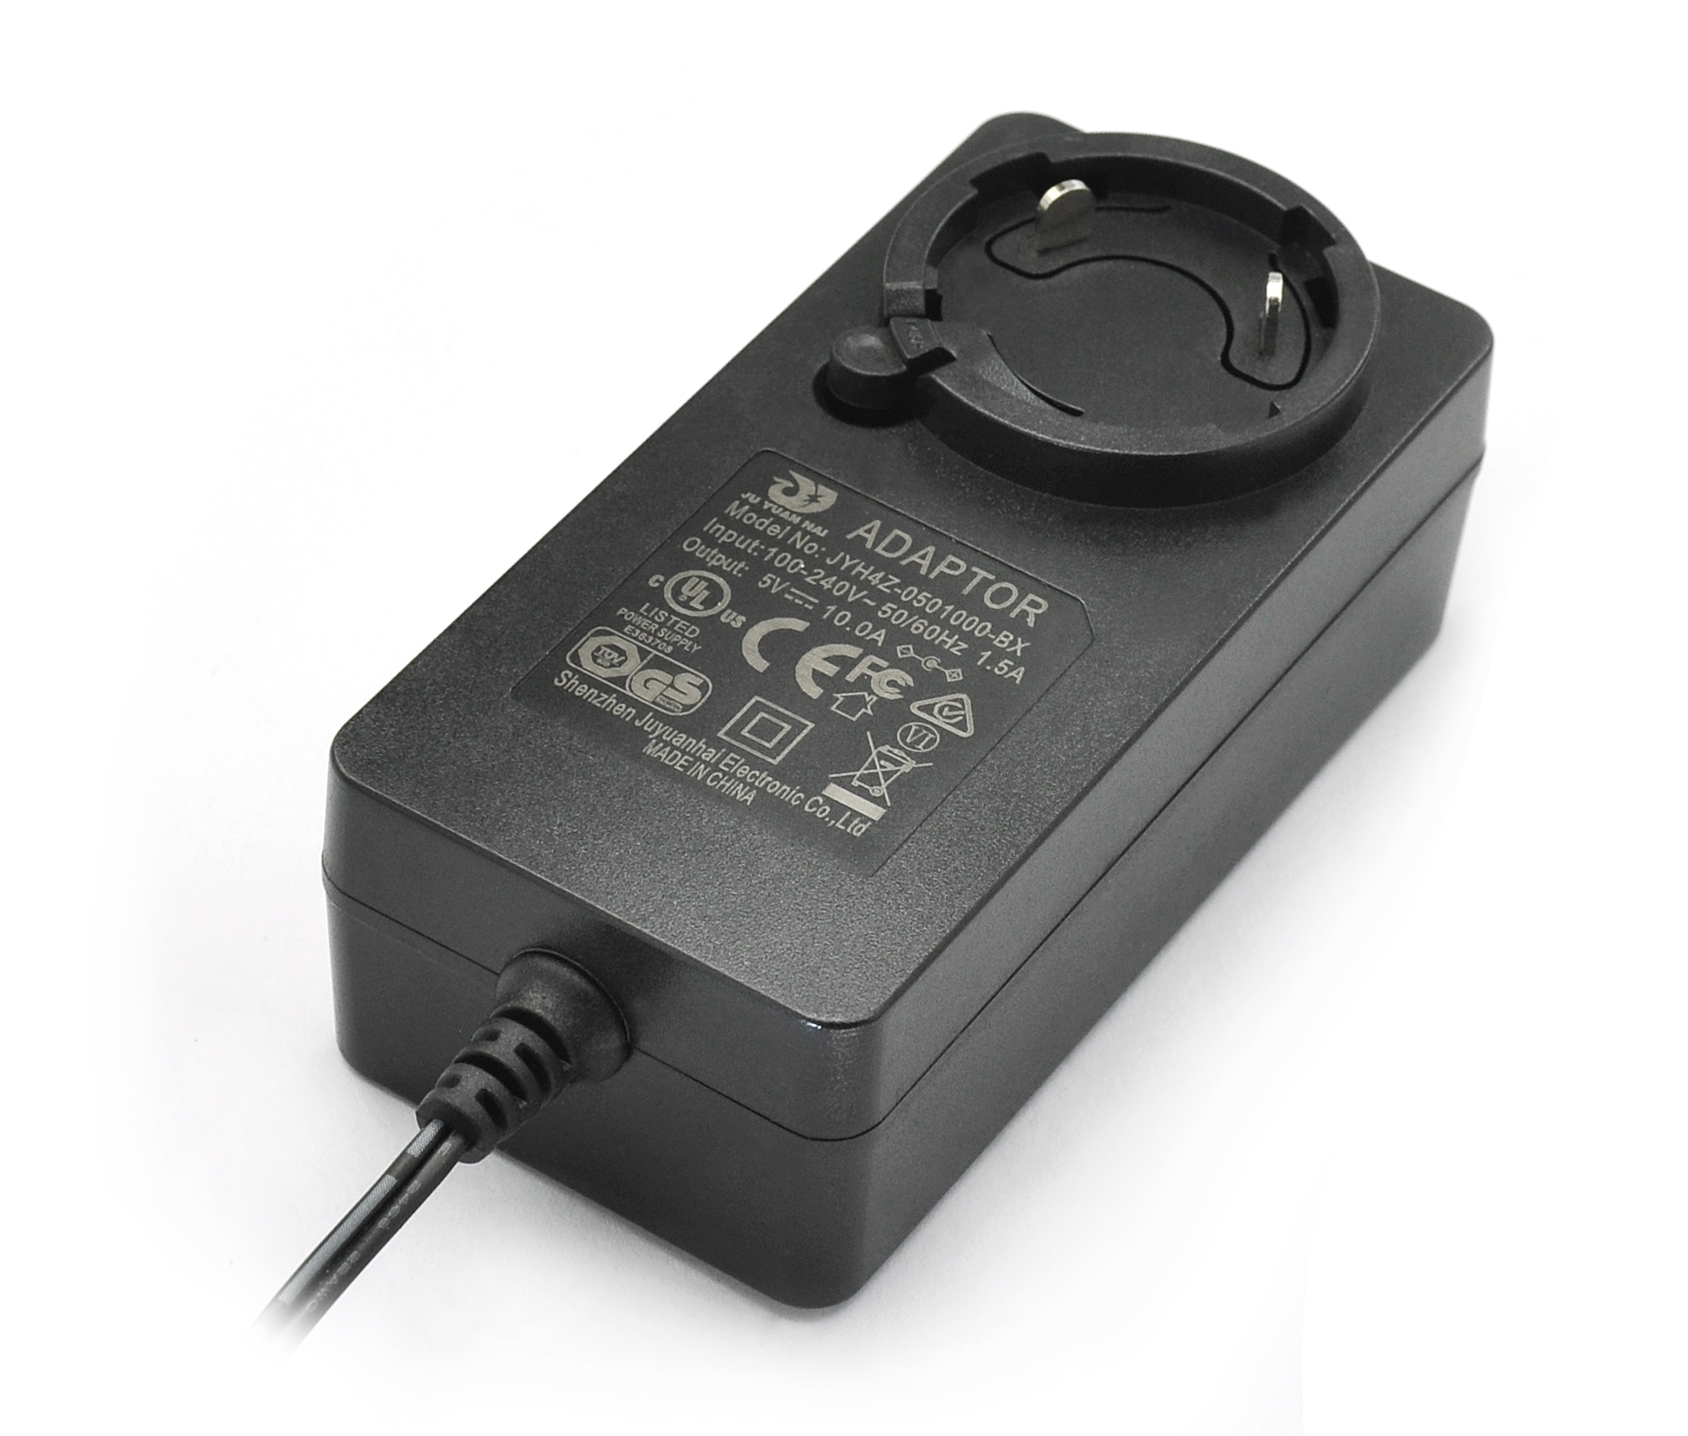 16V 3A Battery Charger Interchangeable Plug